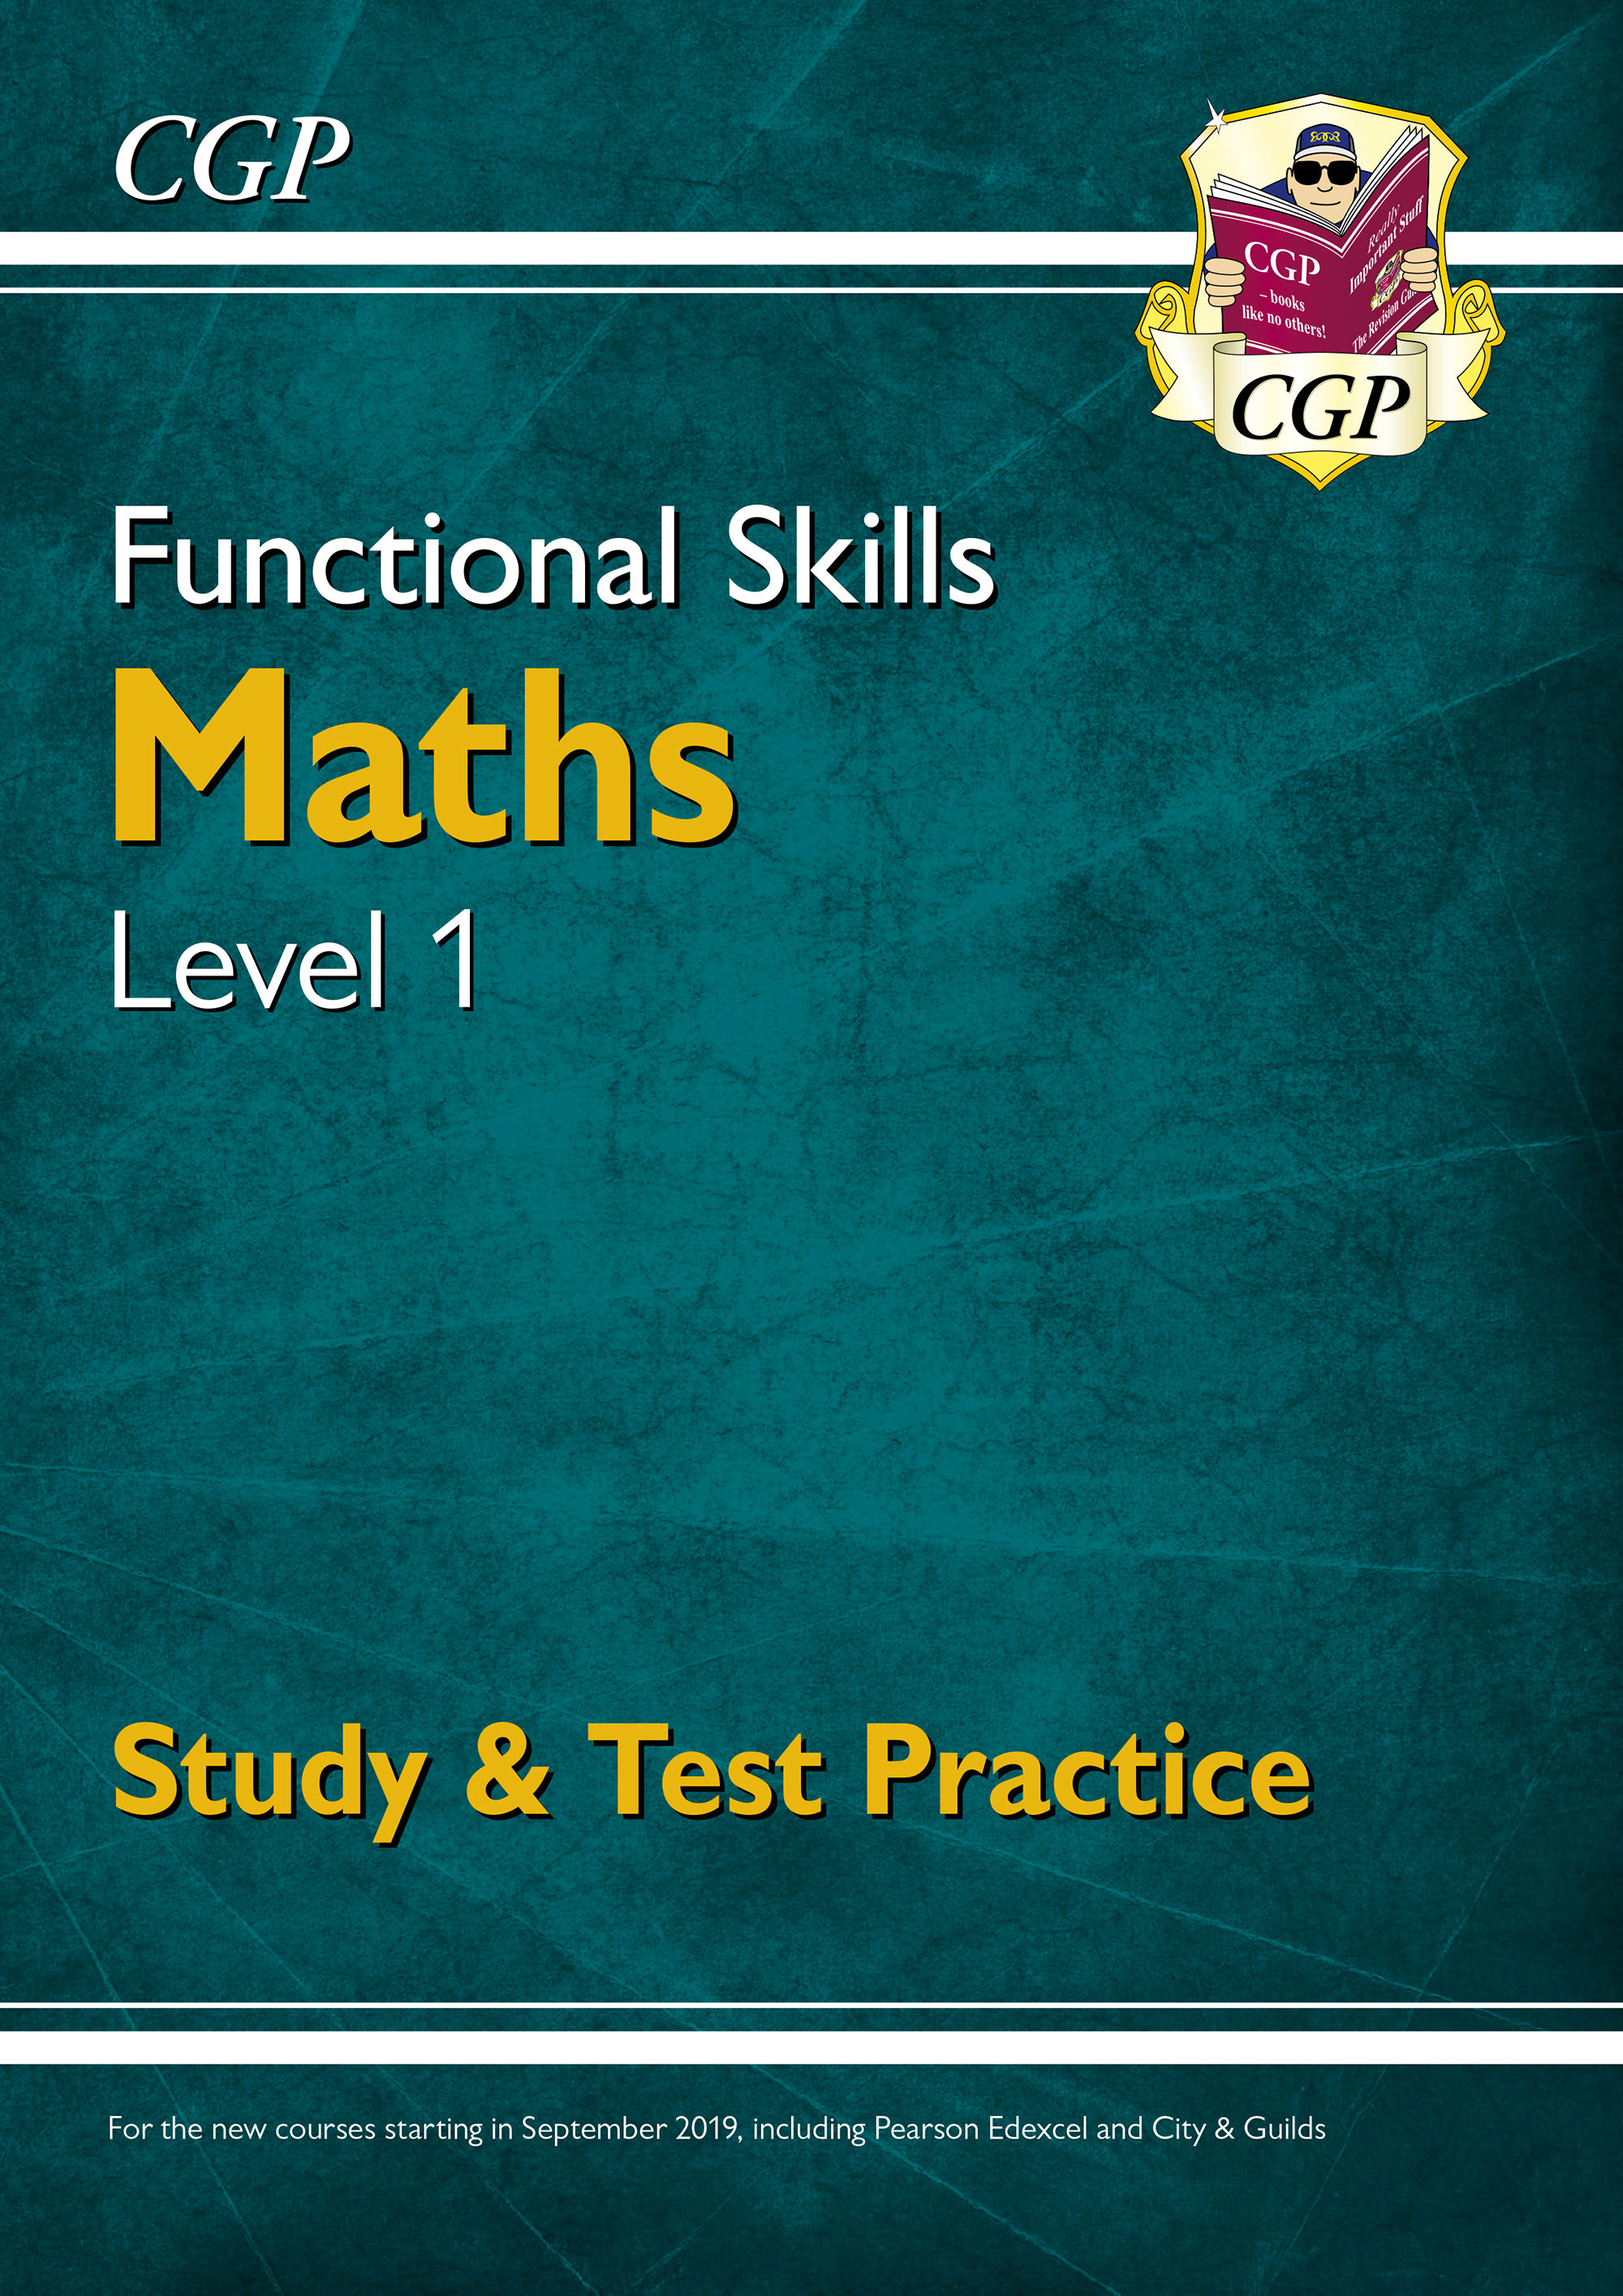 M1SRA3DK - New Functional Skills Maths Level 1 - Study & Test Practice (for 2019 & beyond)